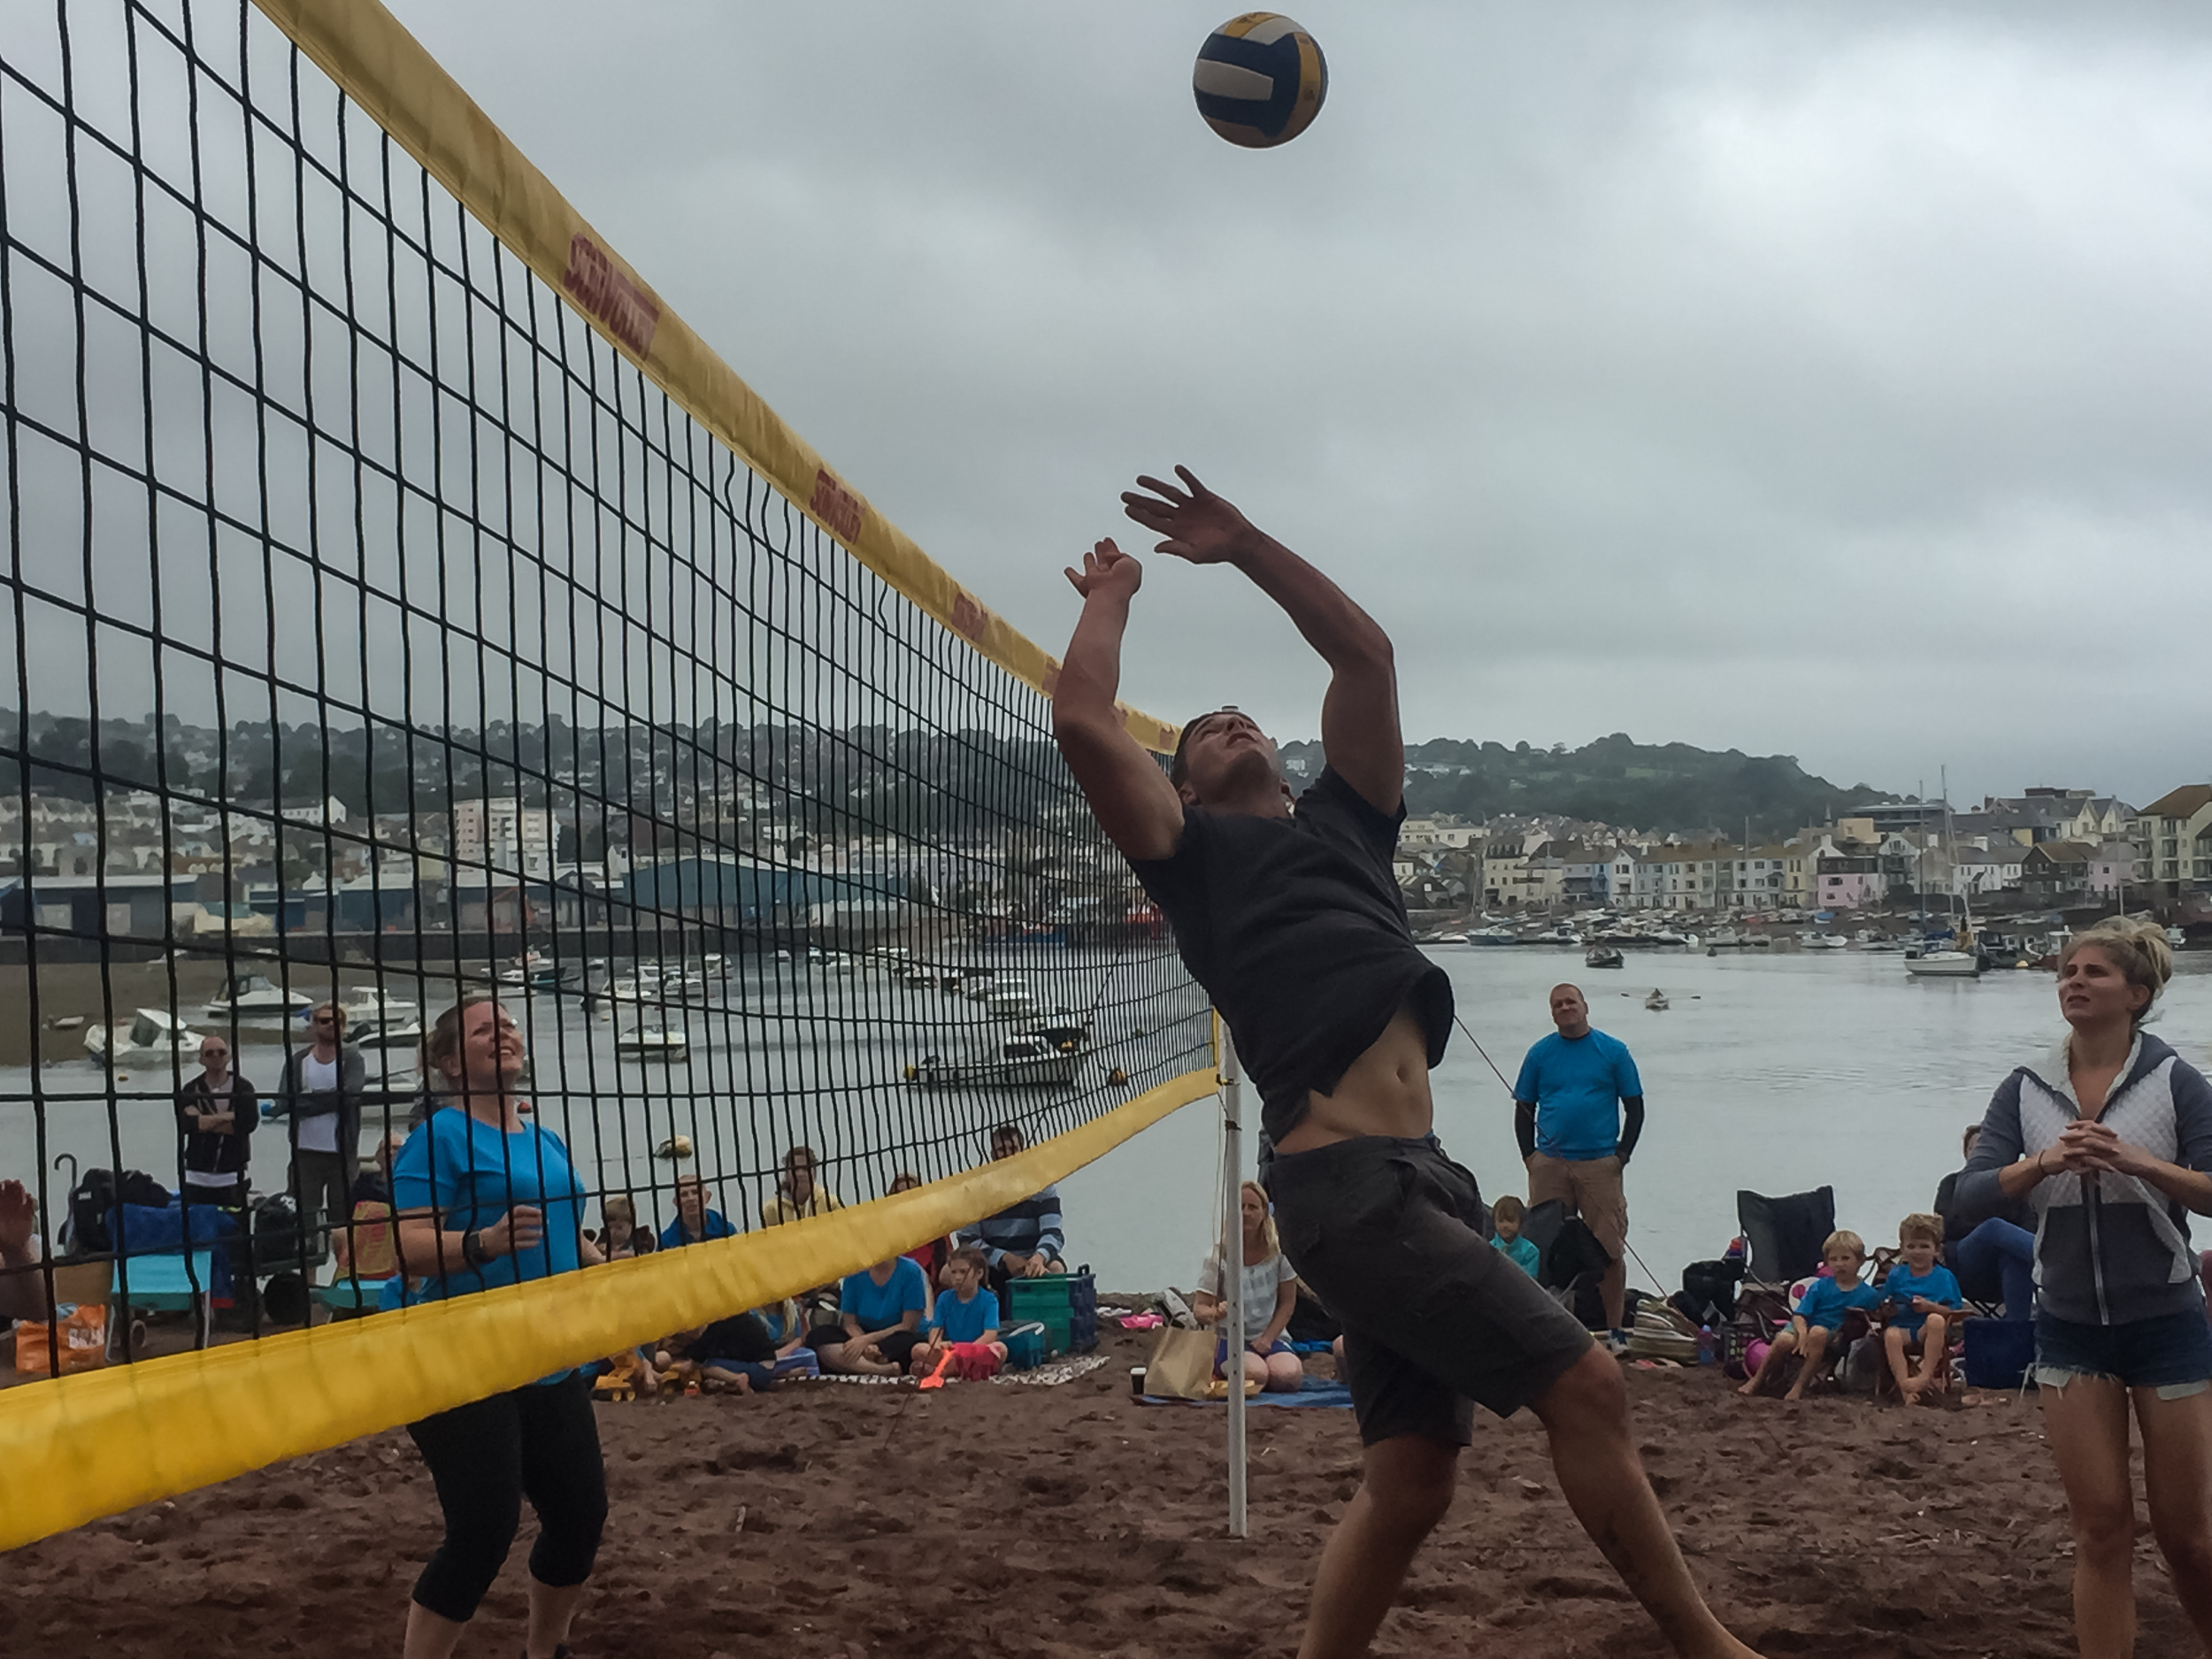 Highly contested beach volley ball matches